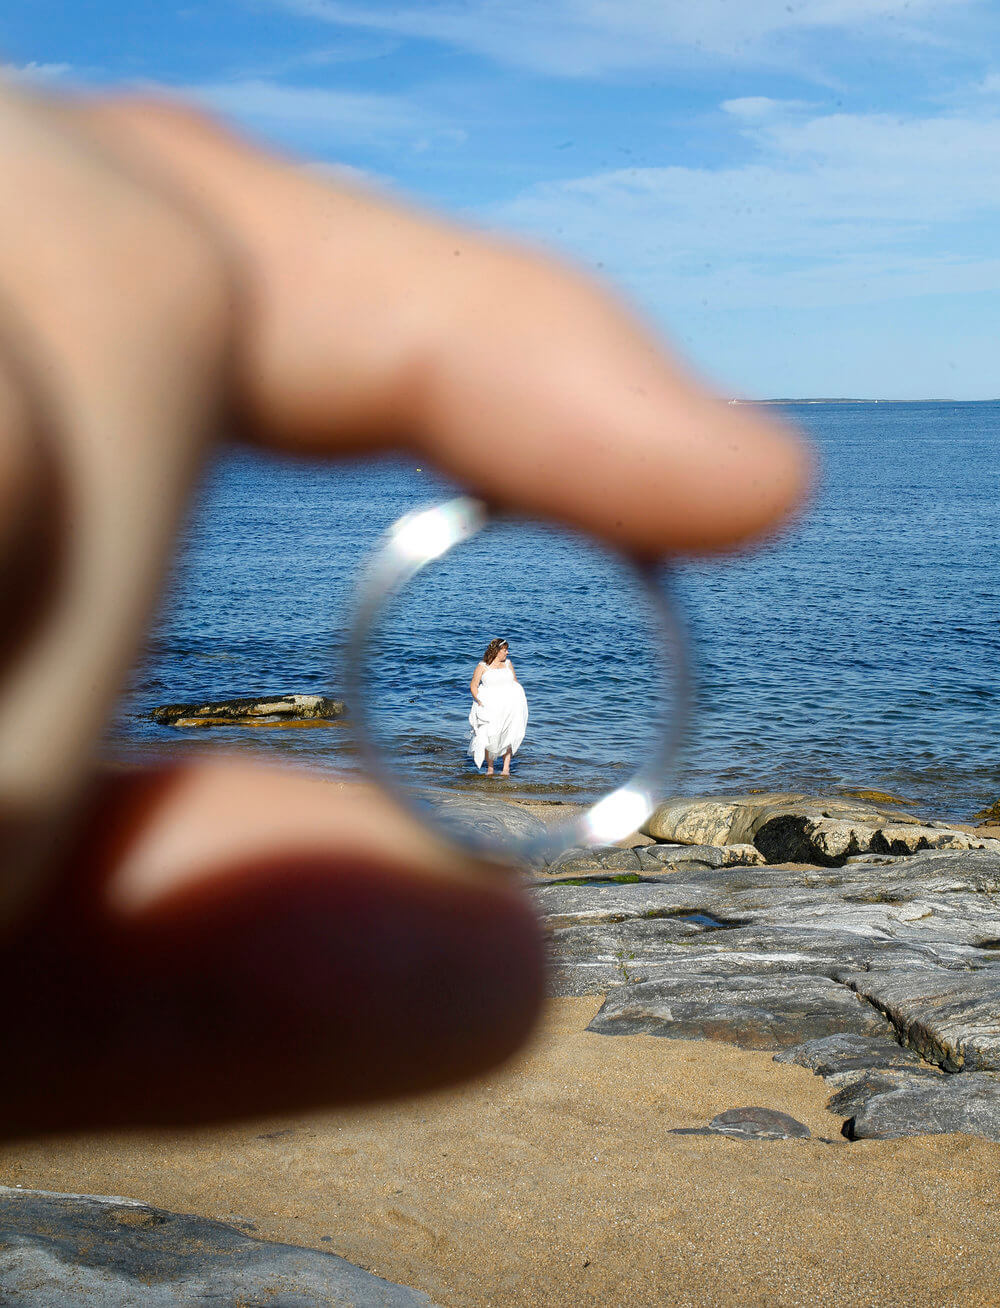 Wedding photography of the bride in the ocean seen through the wedding ring held by the groom